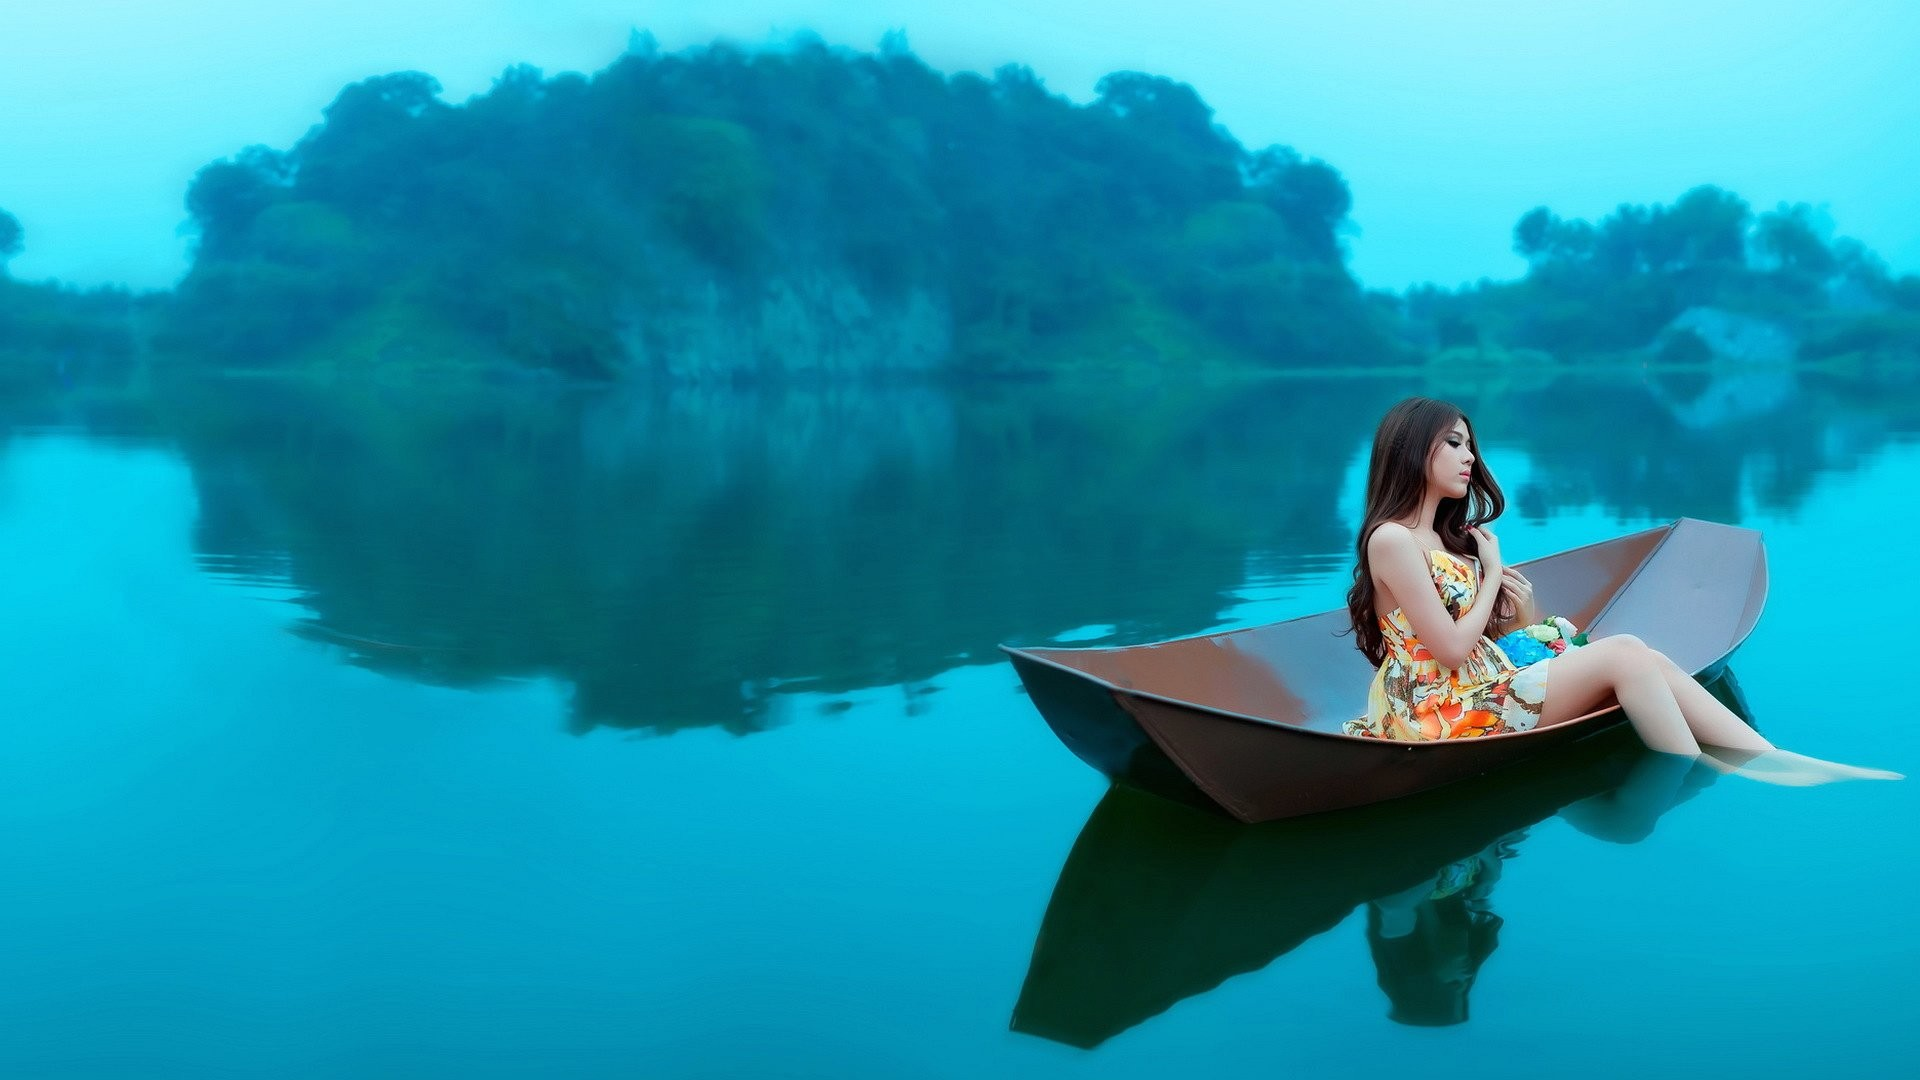 Woman On Boats Wallpaper 64 Images